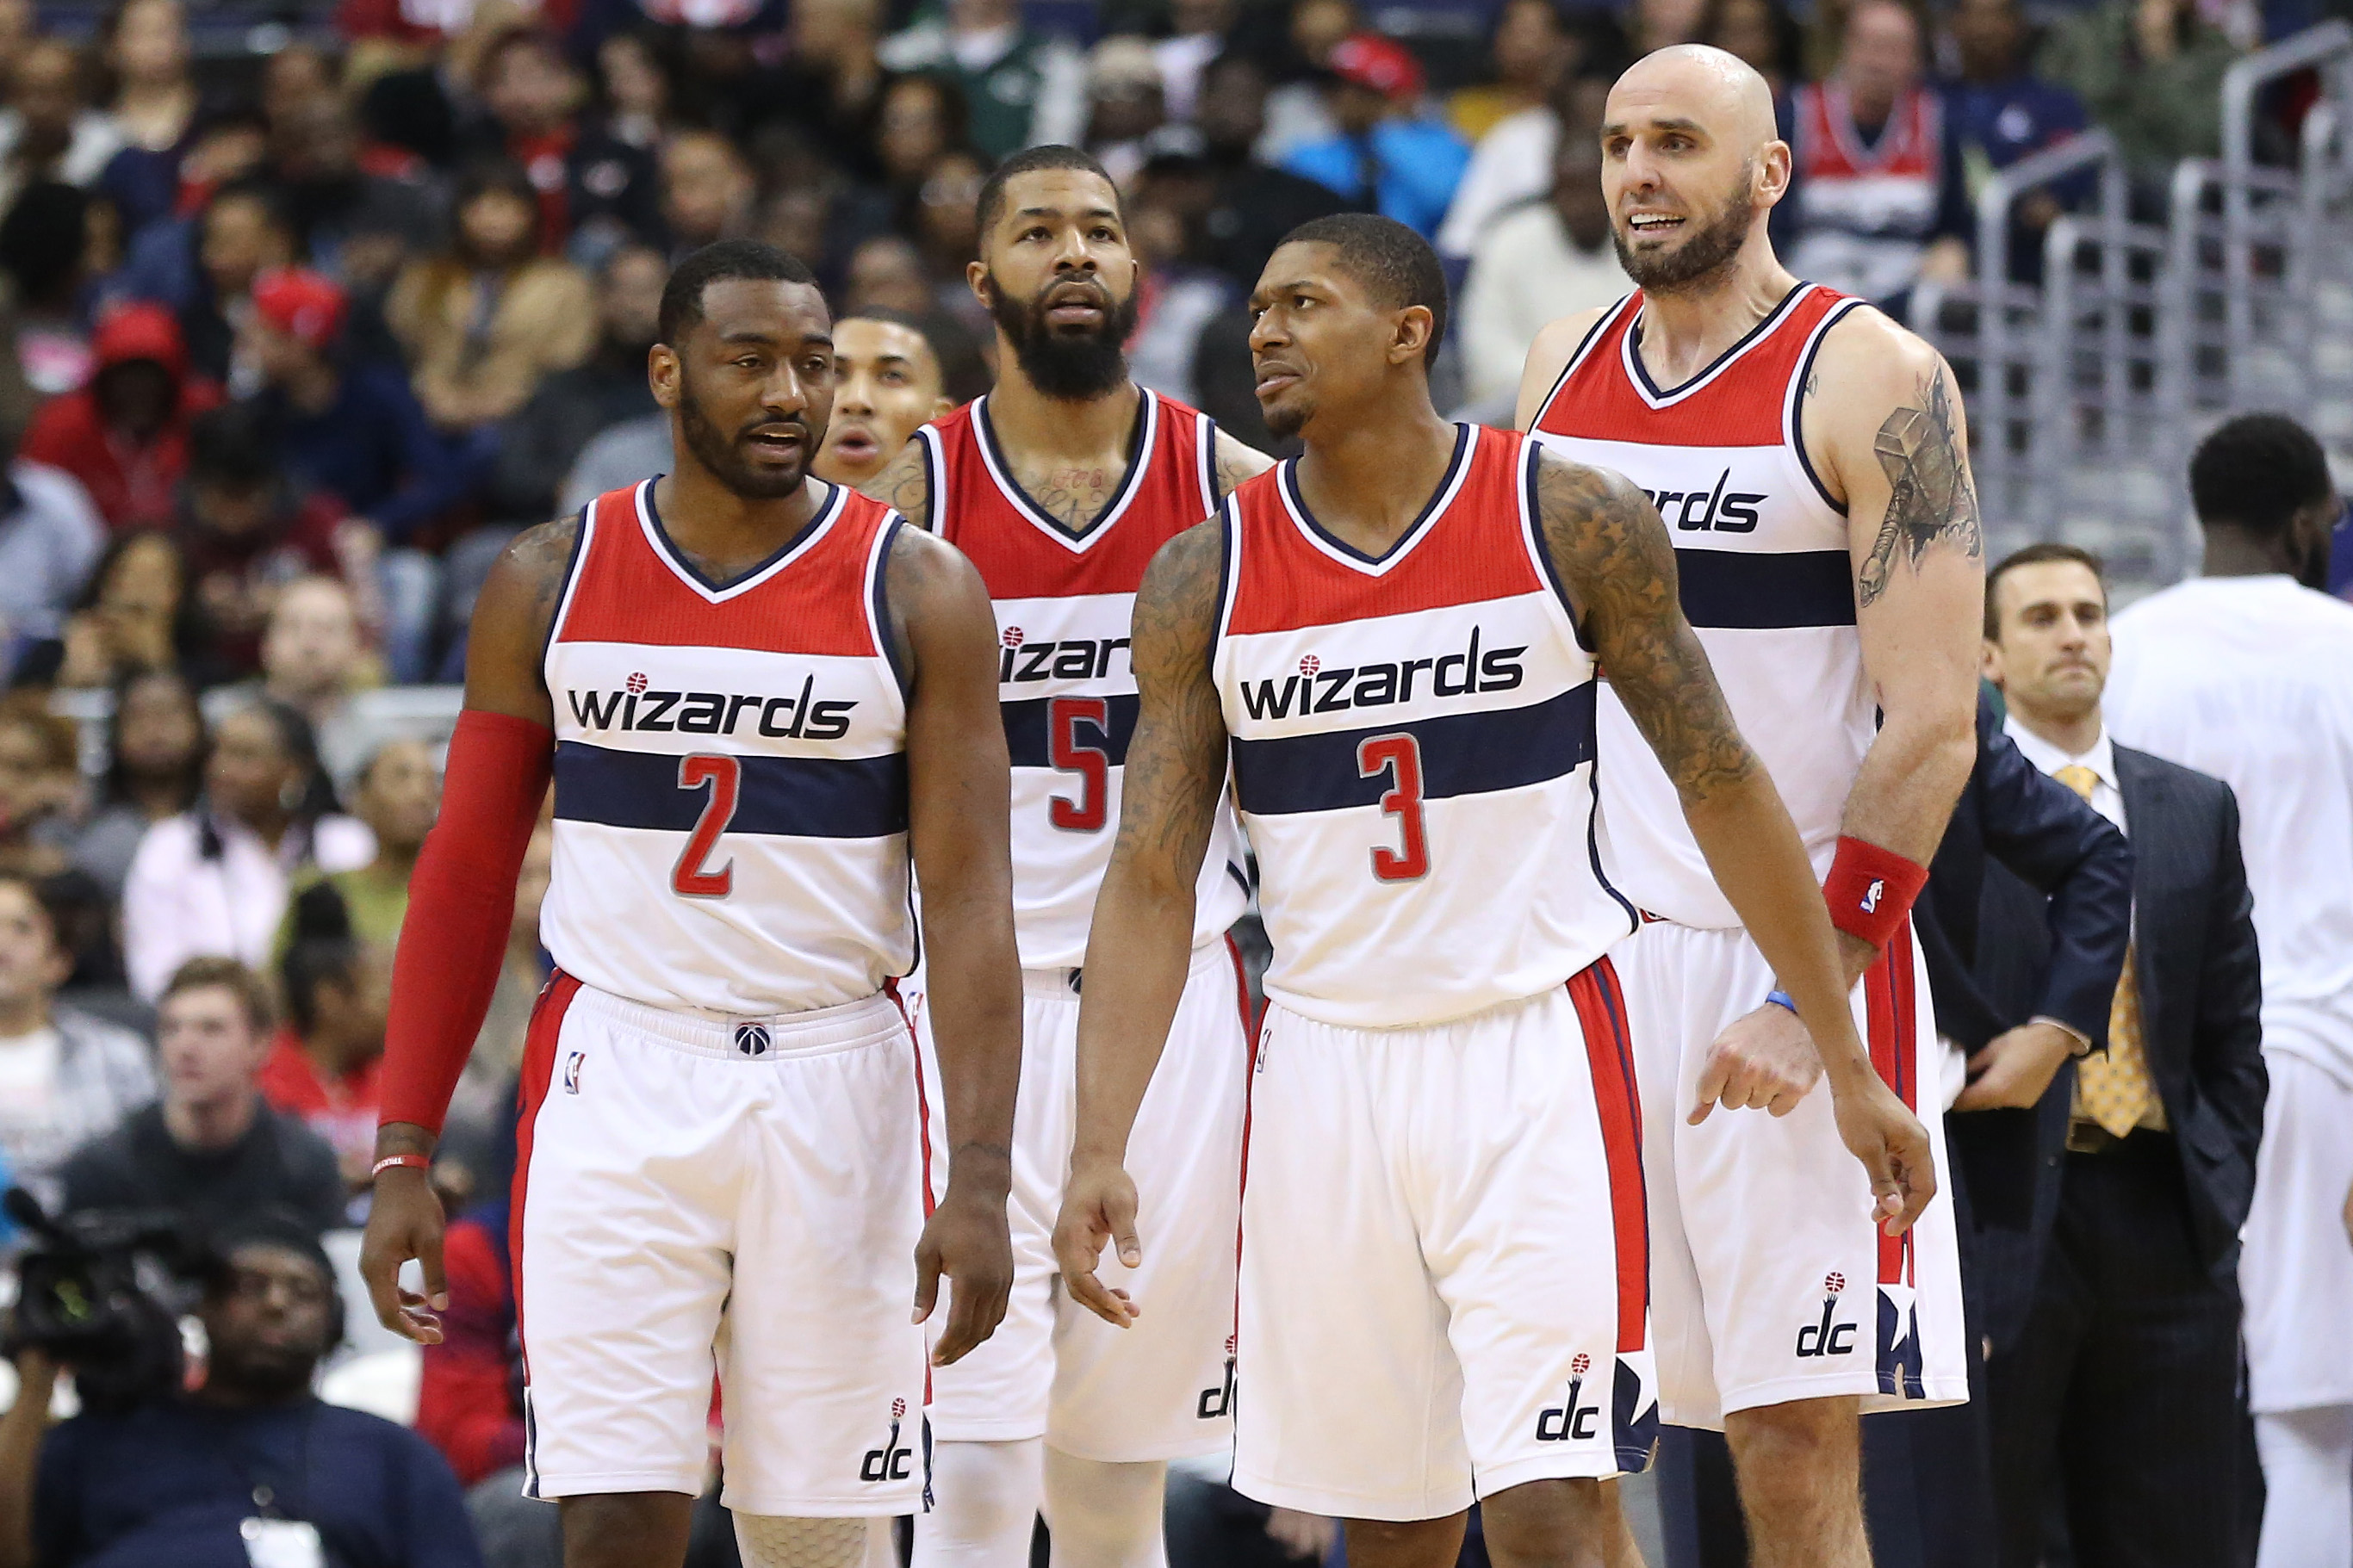 With Heightened Expectations, Will Wizards Improve or Implode?